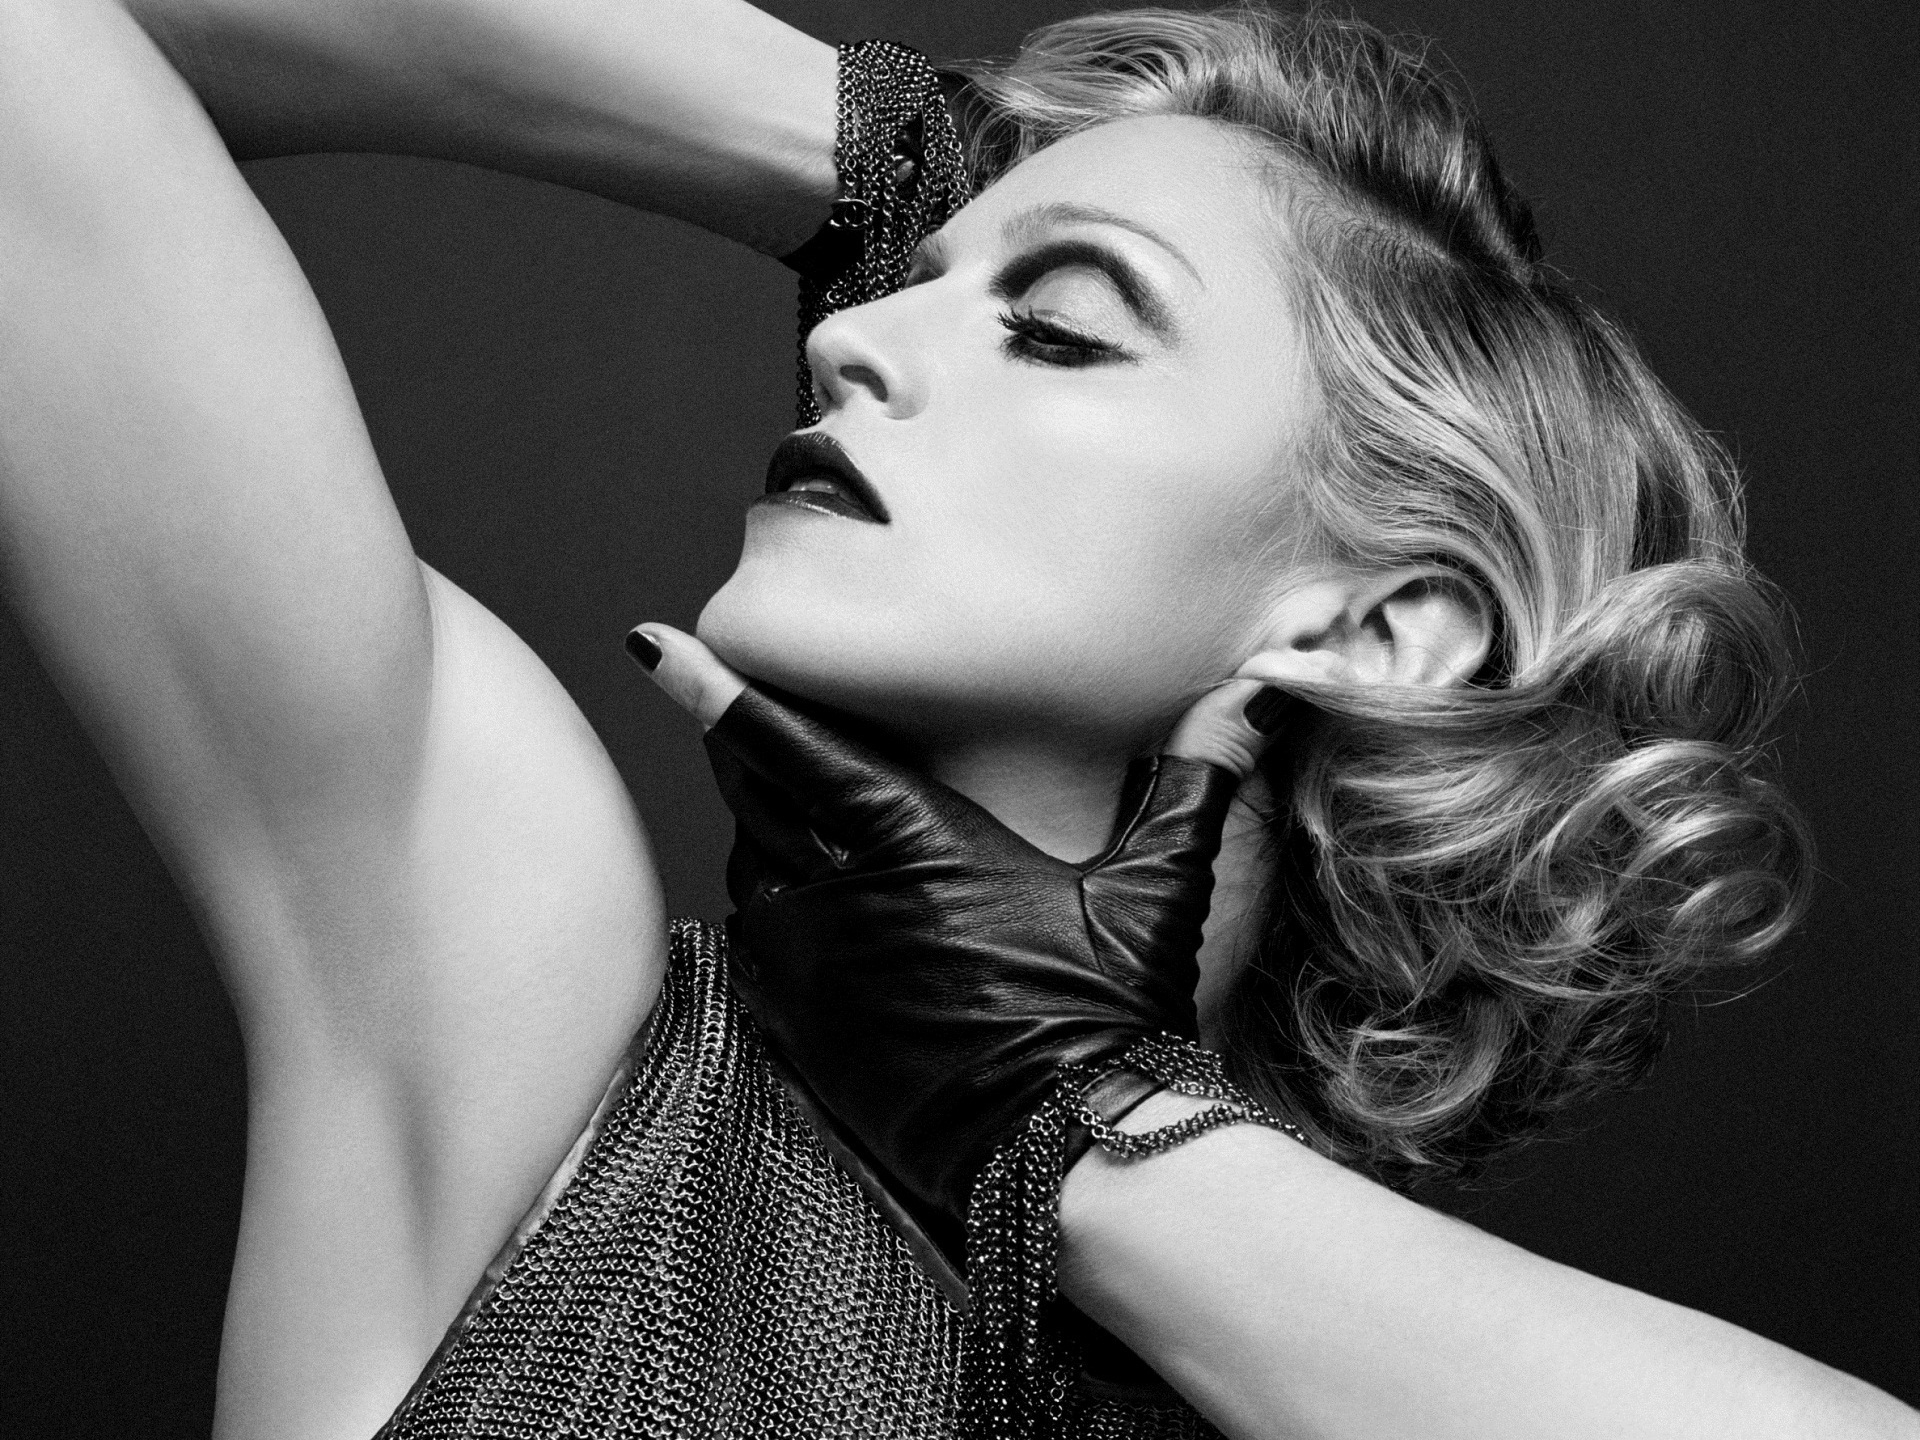 Madonna wallpapers high resolution and quality download - Madonna hd images ...